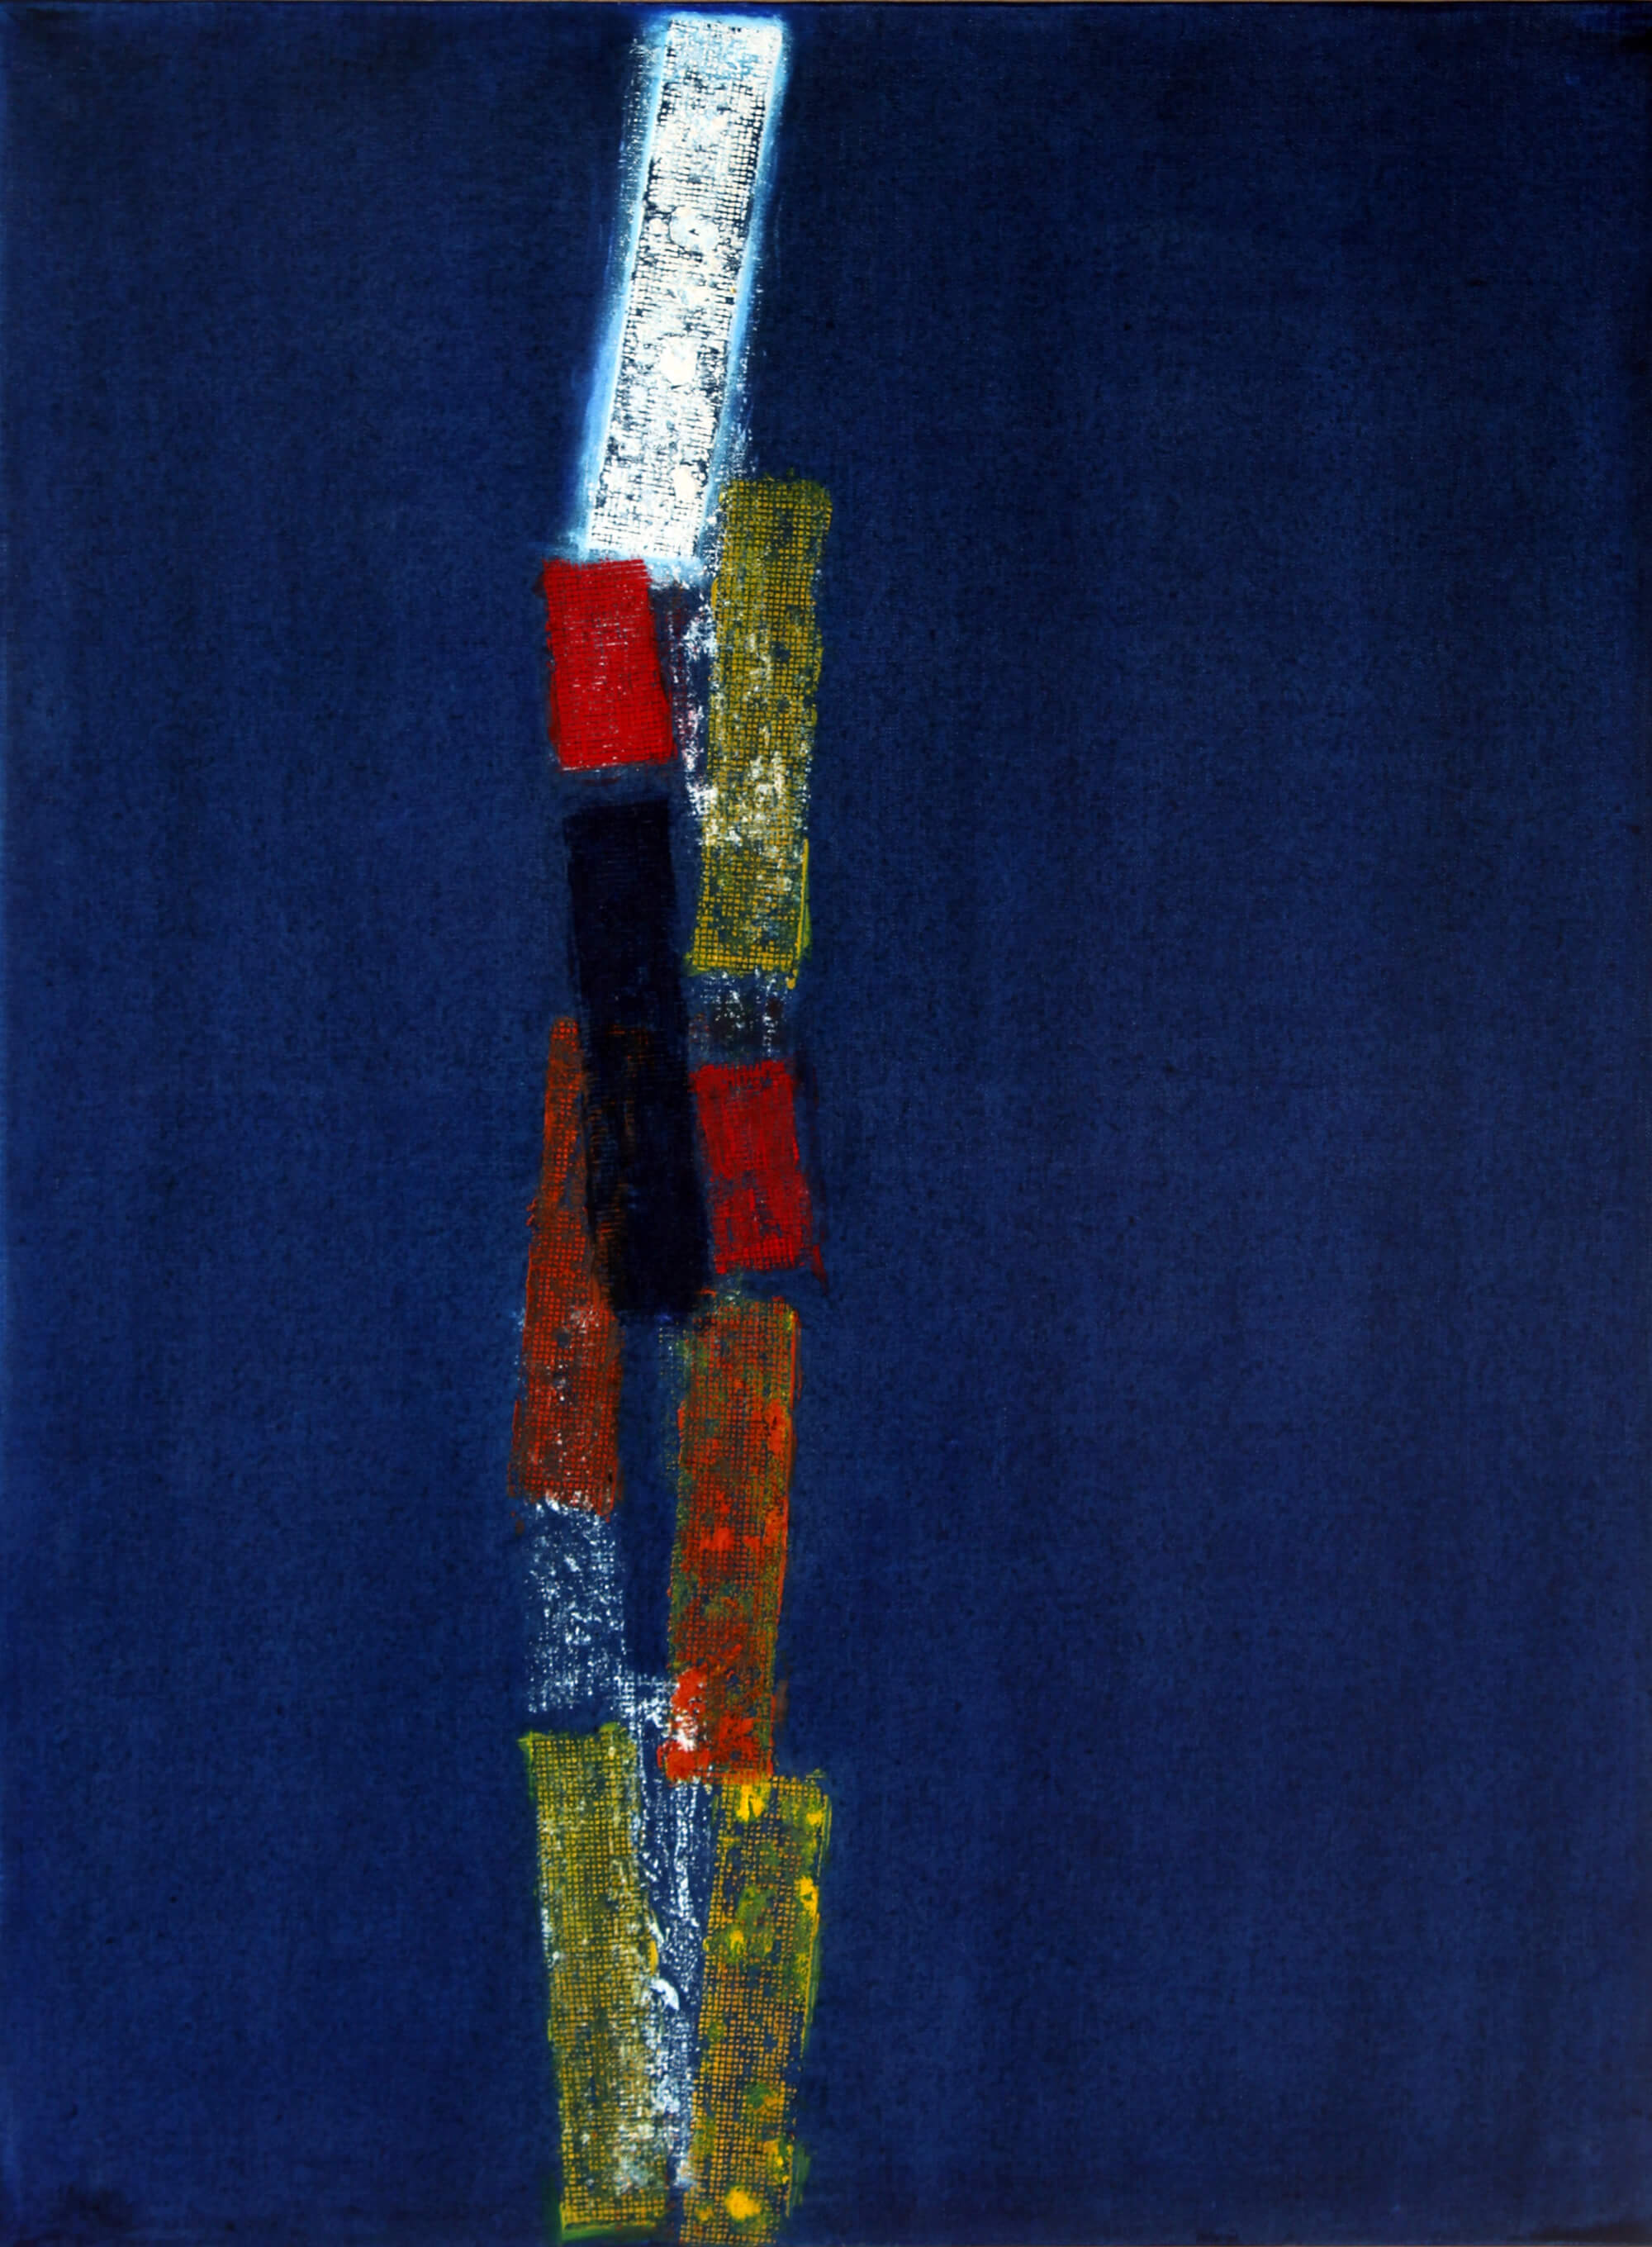 Abstract oil bar painting of car lights in a dark curfew night by Ludwig Medina